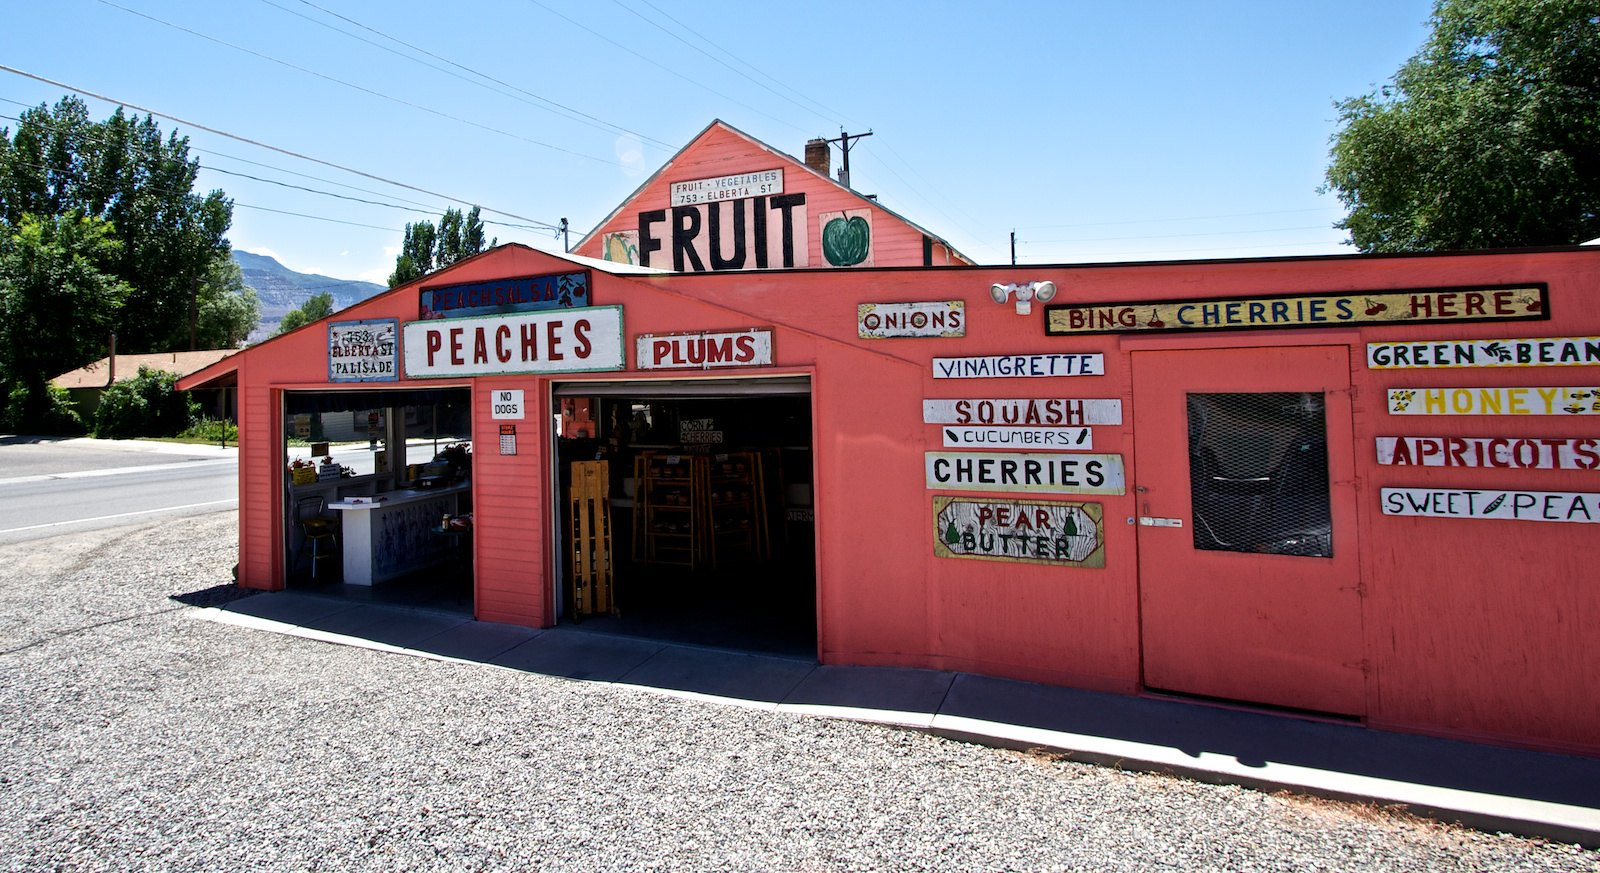 Image of a produce market on the Fruit & Wine Scenic Byway in Palisade, Colorado